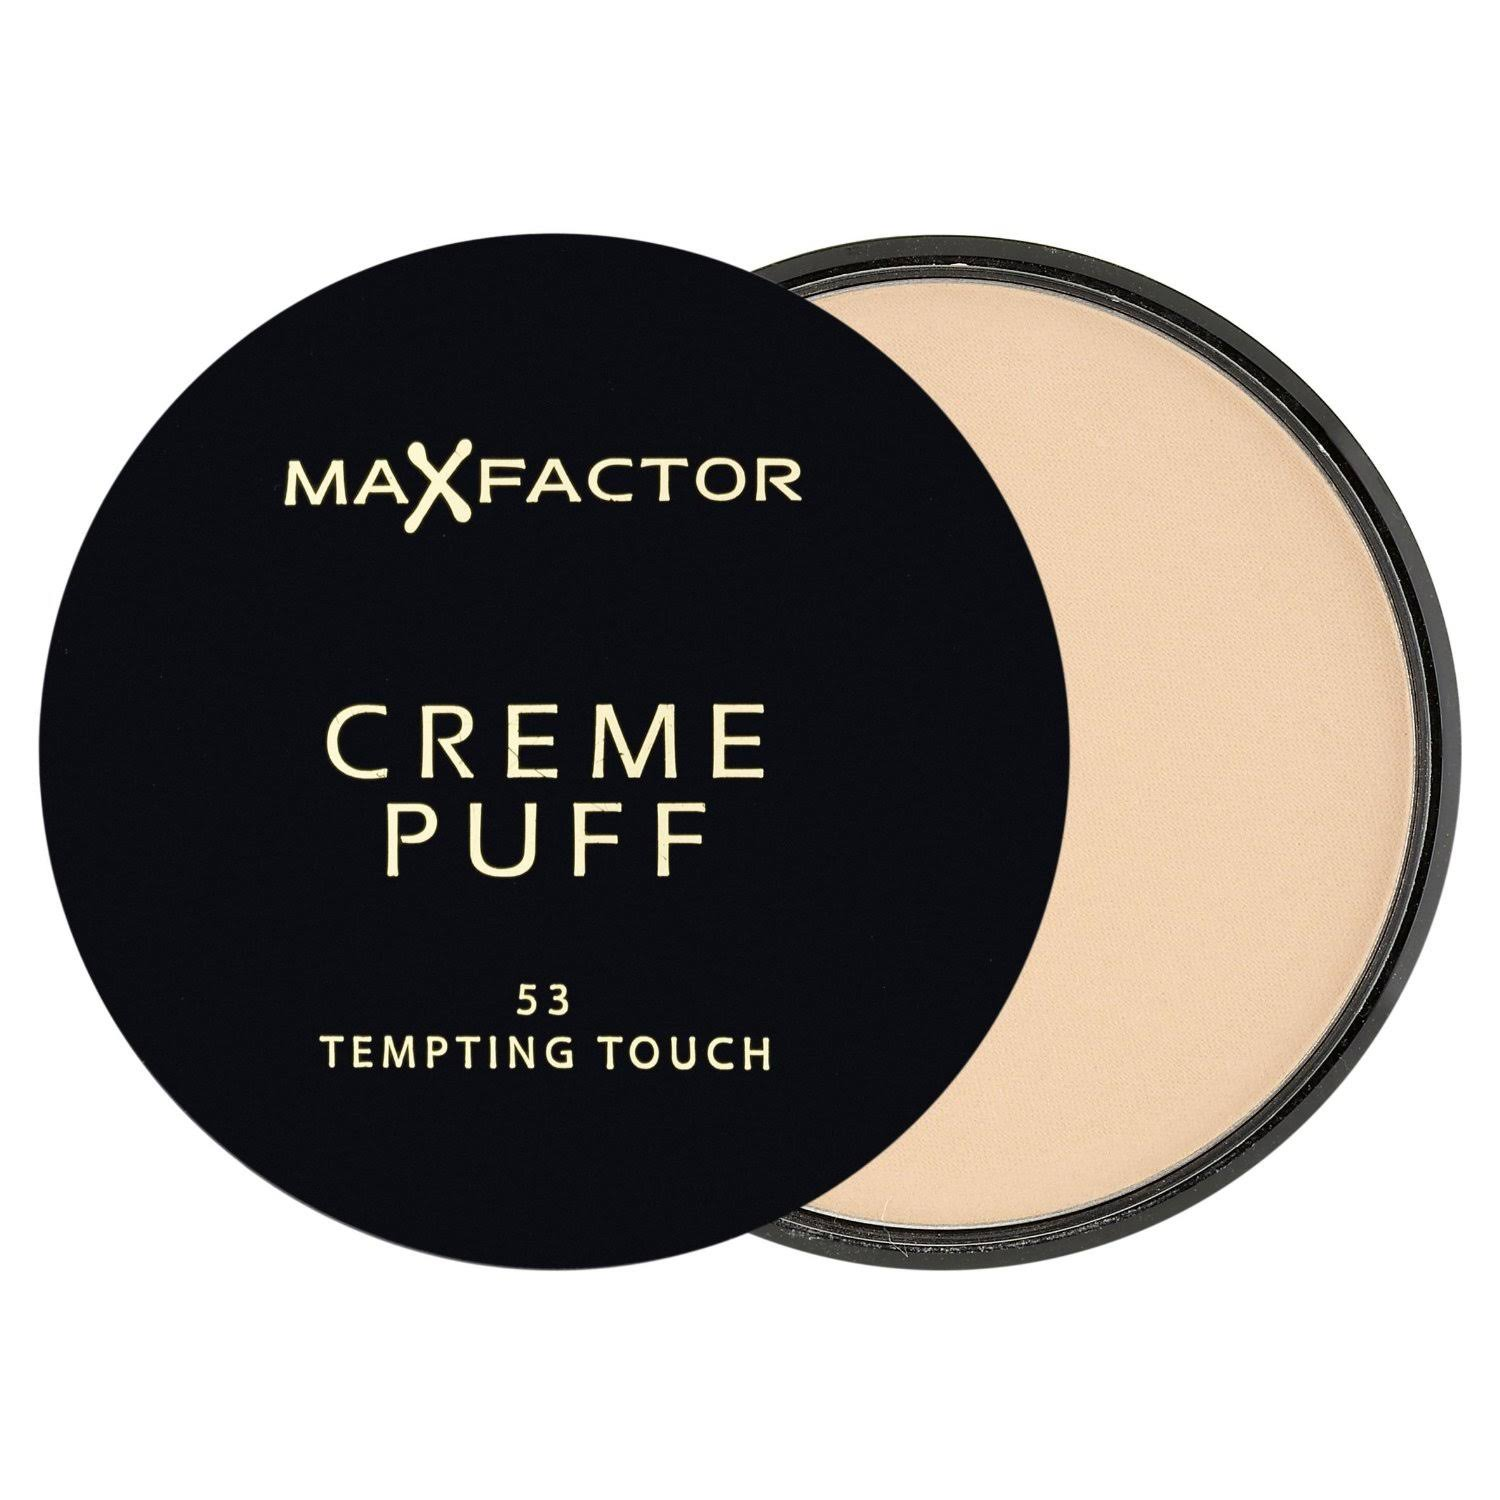 Max Factor Creme Puff Foundation - 53 Tempting Touch, 21g